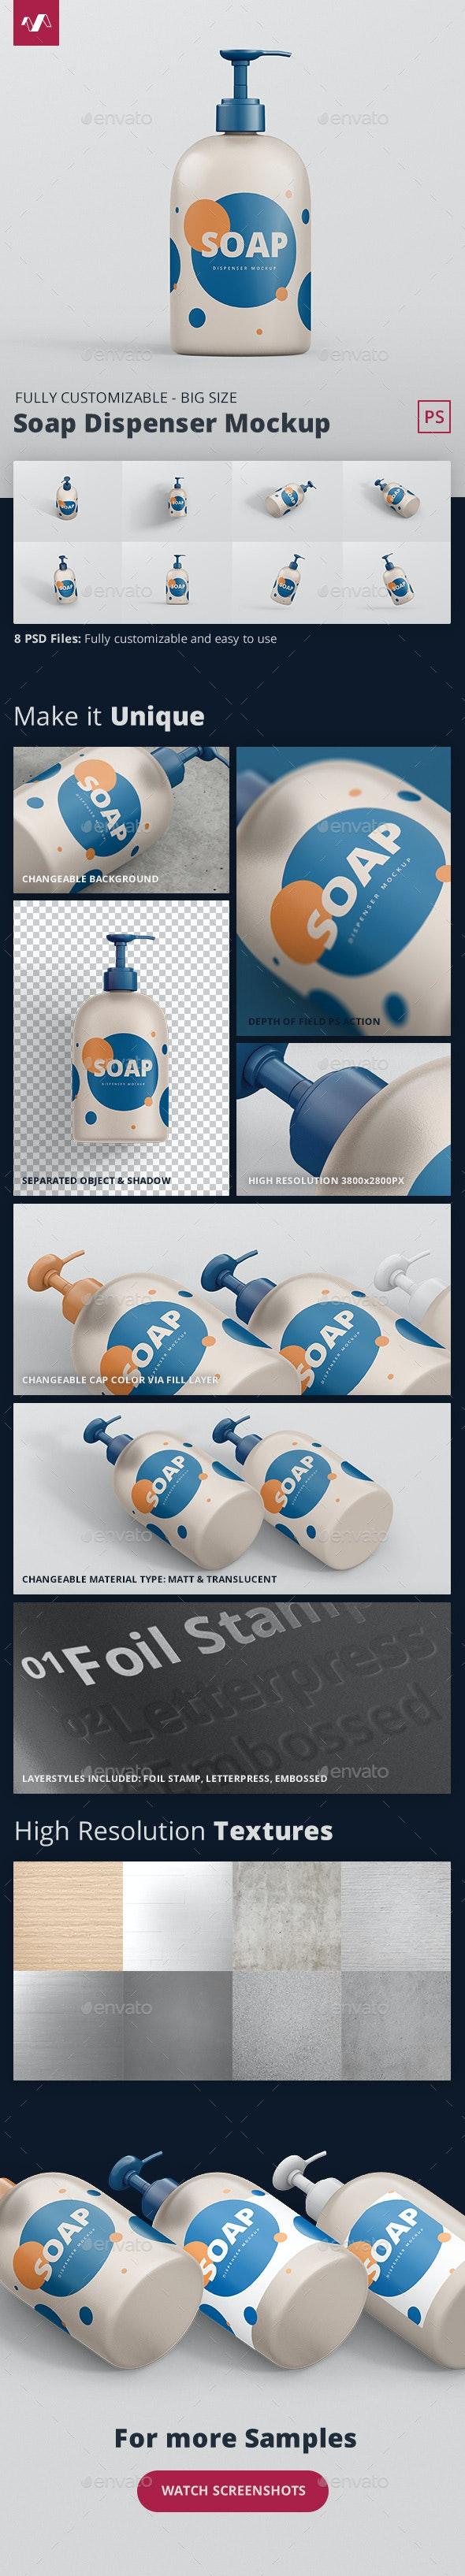 Soap Dispenser Mockup Big Size - Miscellaneous Packaging